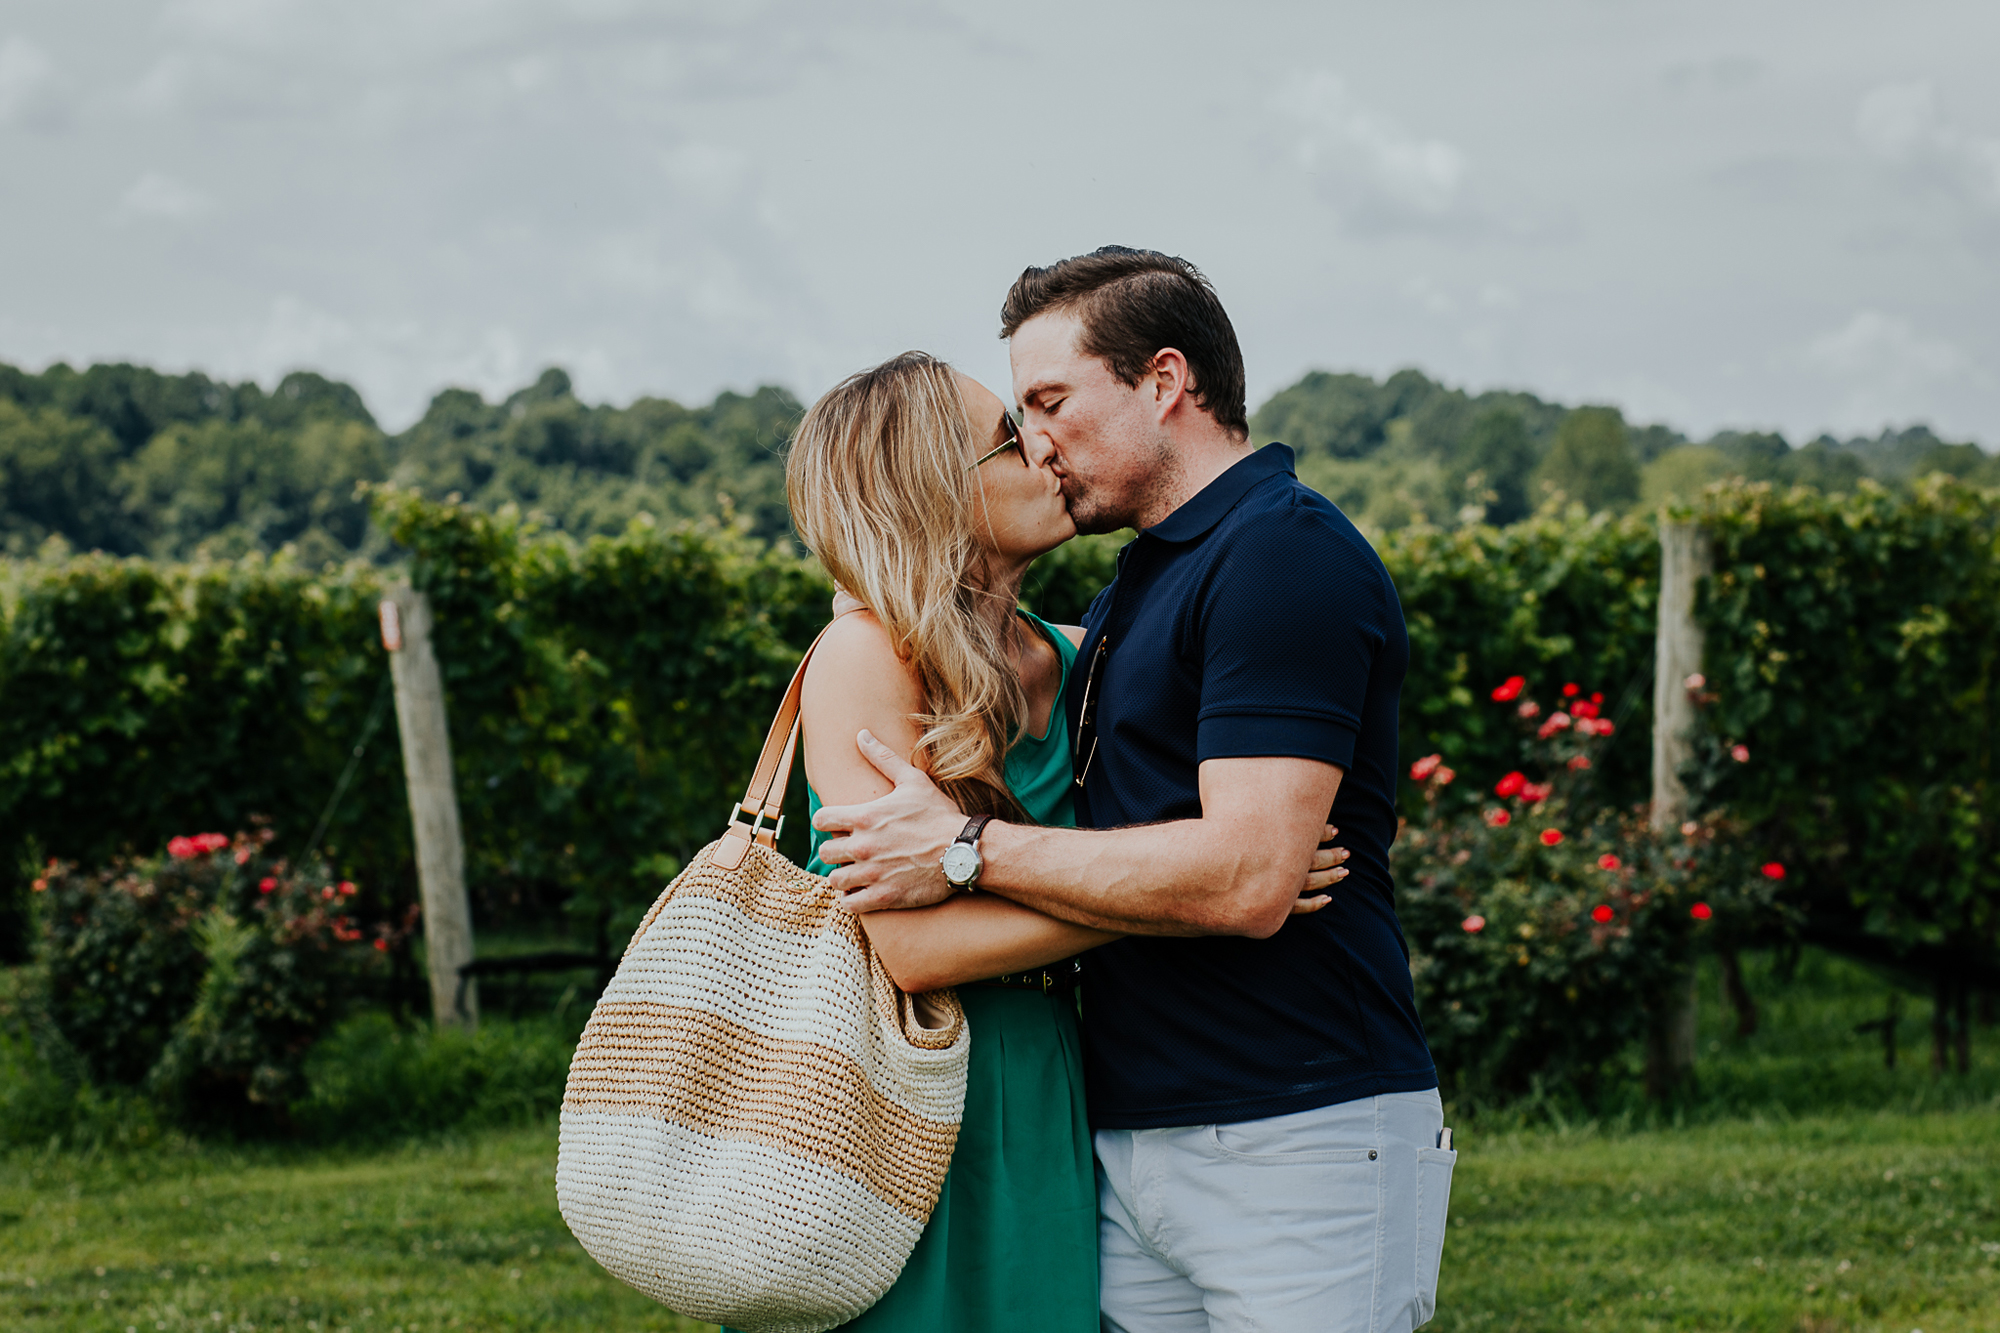 012-stone_bridge_winery_engagement_proposal.jpg